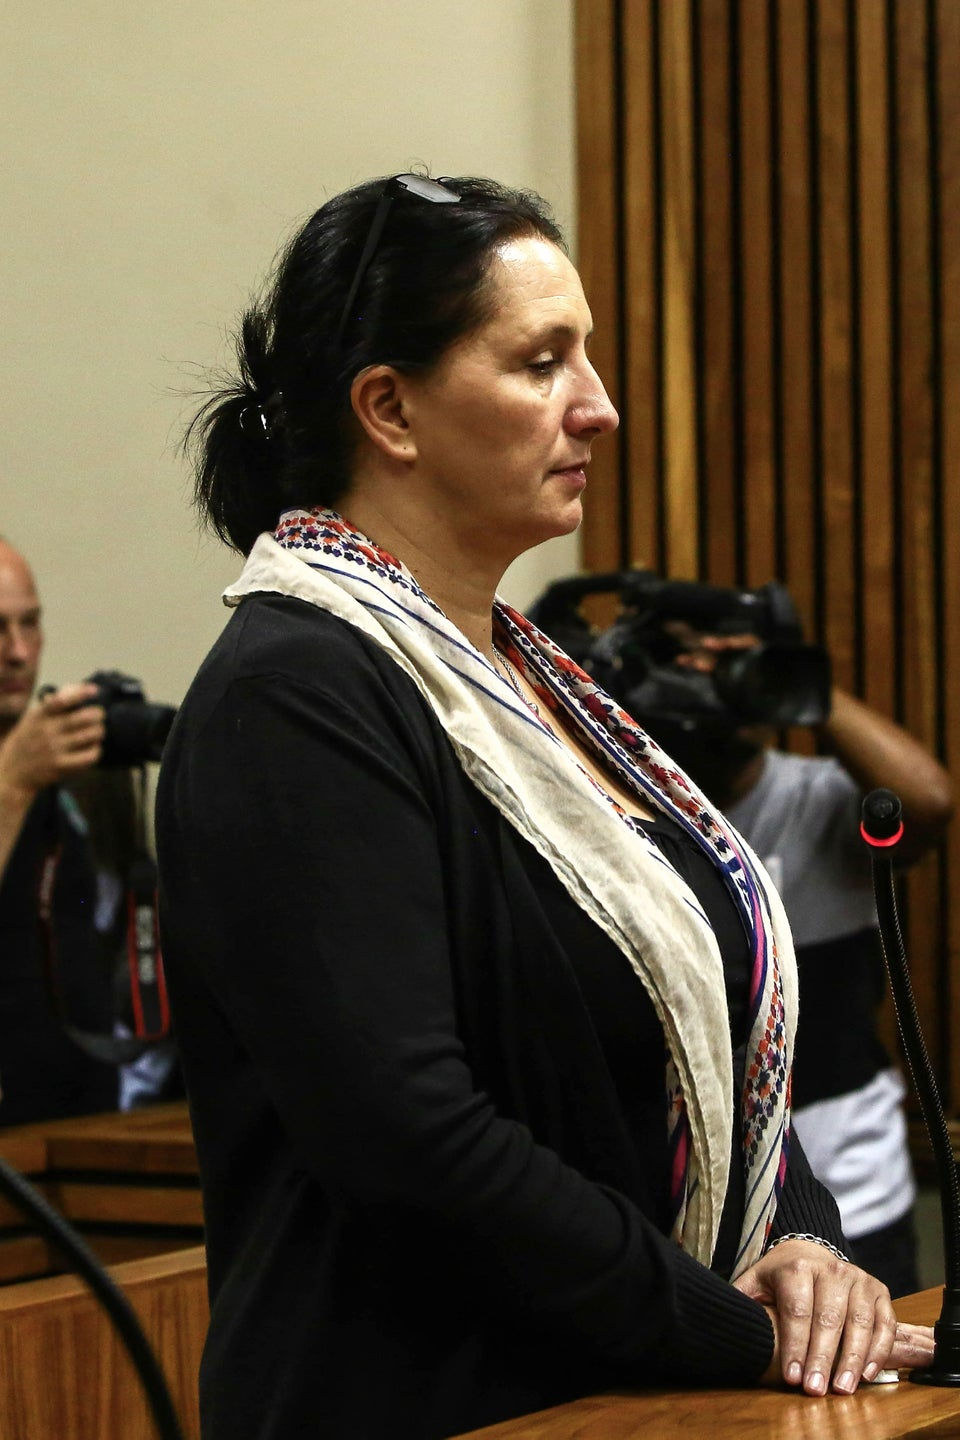 The Quick Read: White South African Woman Receives Jail Time For Racial Slur